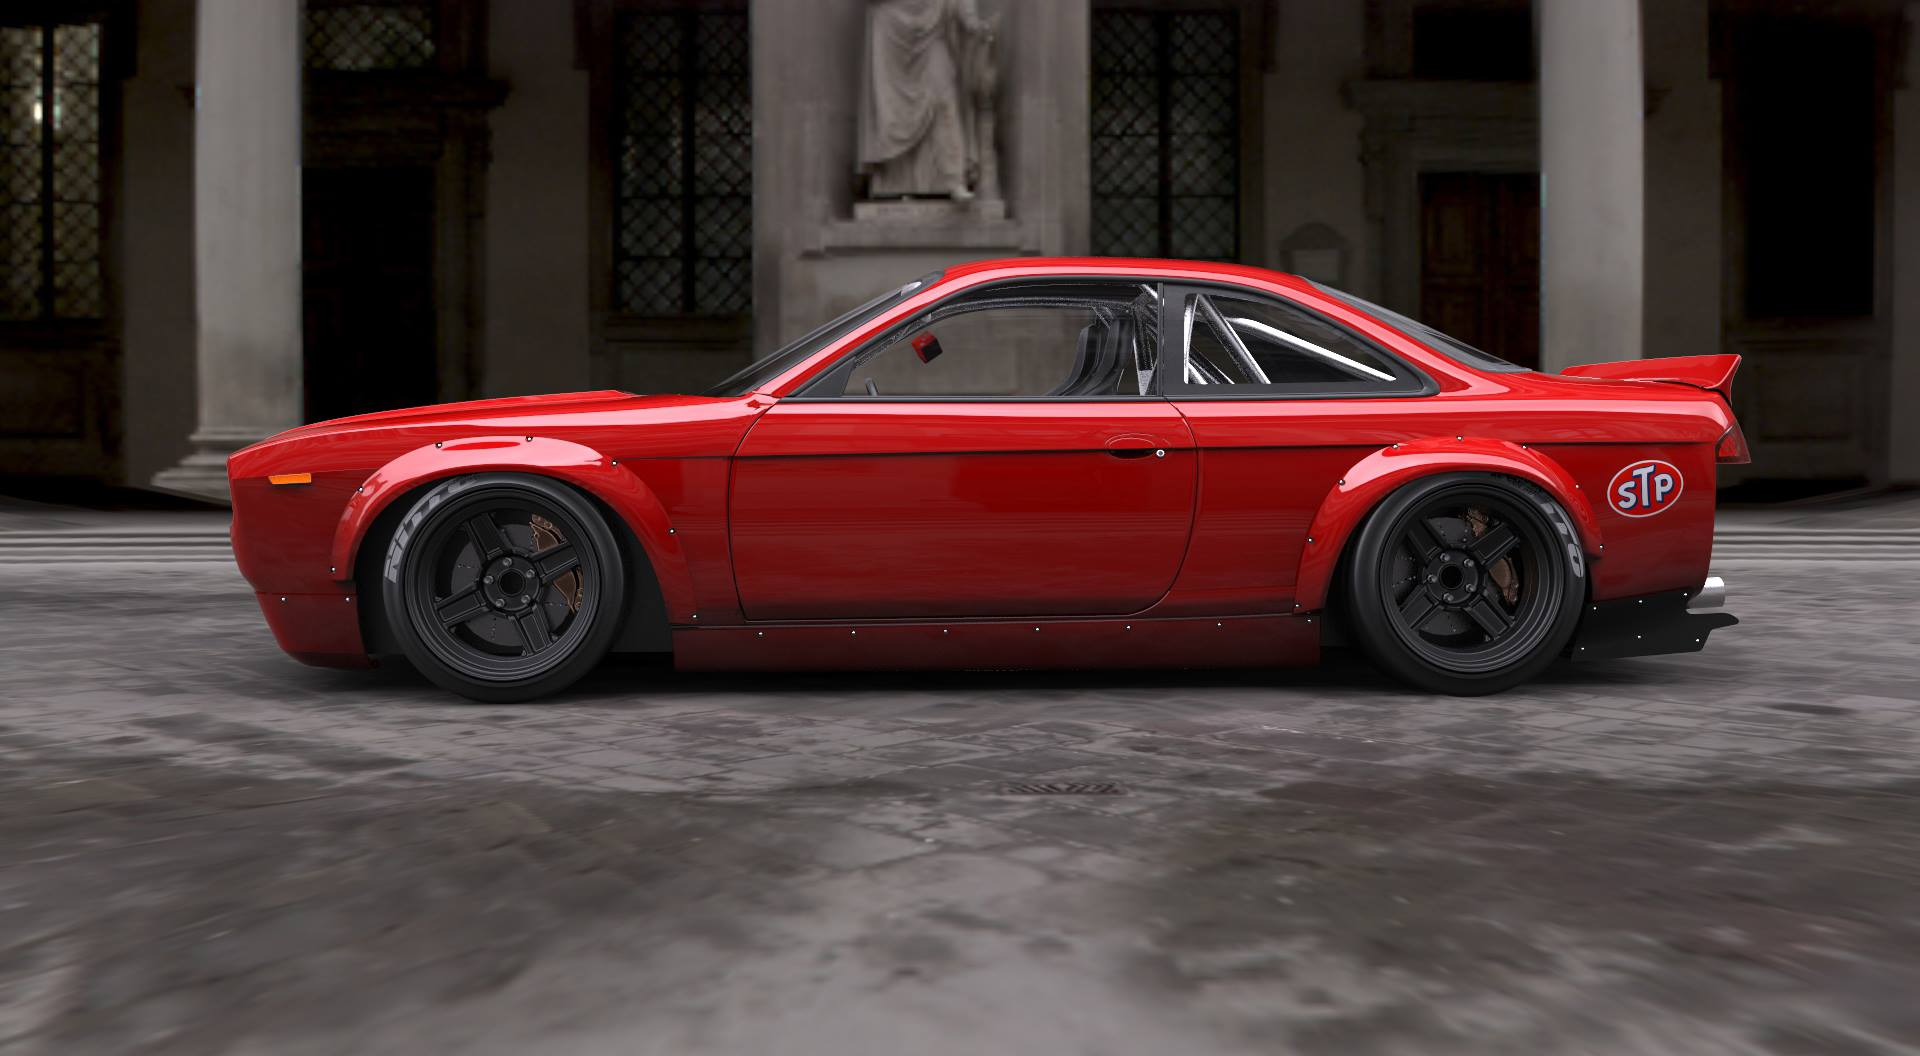 Rocket Bunny Cuda Body Kit S14 The News Wheel